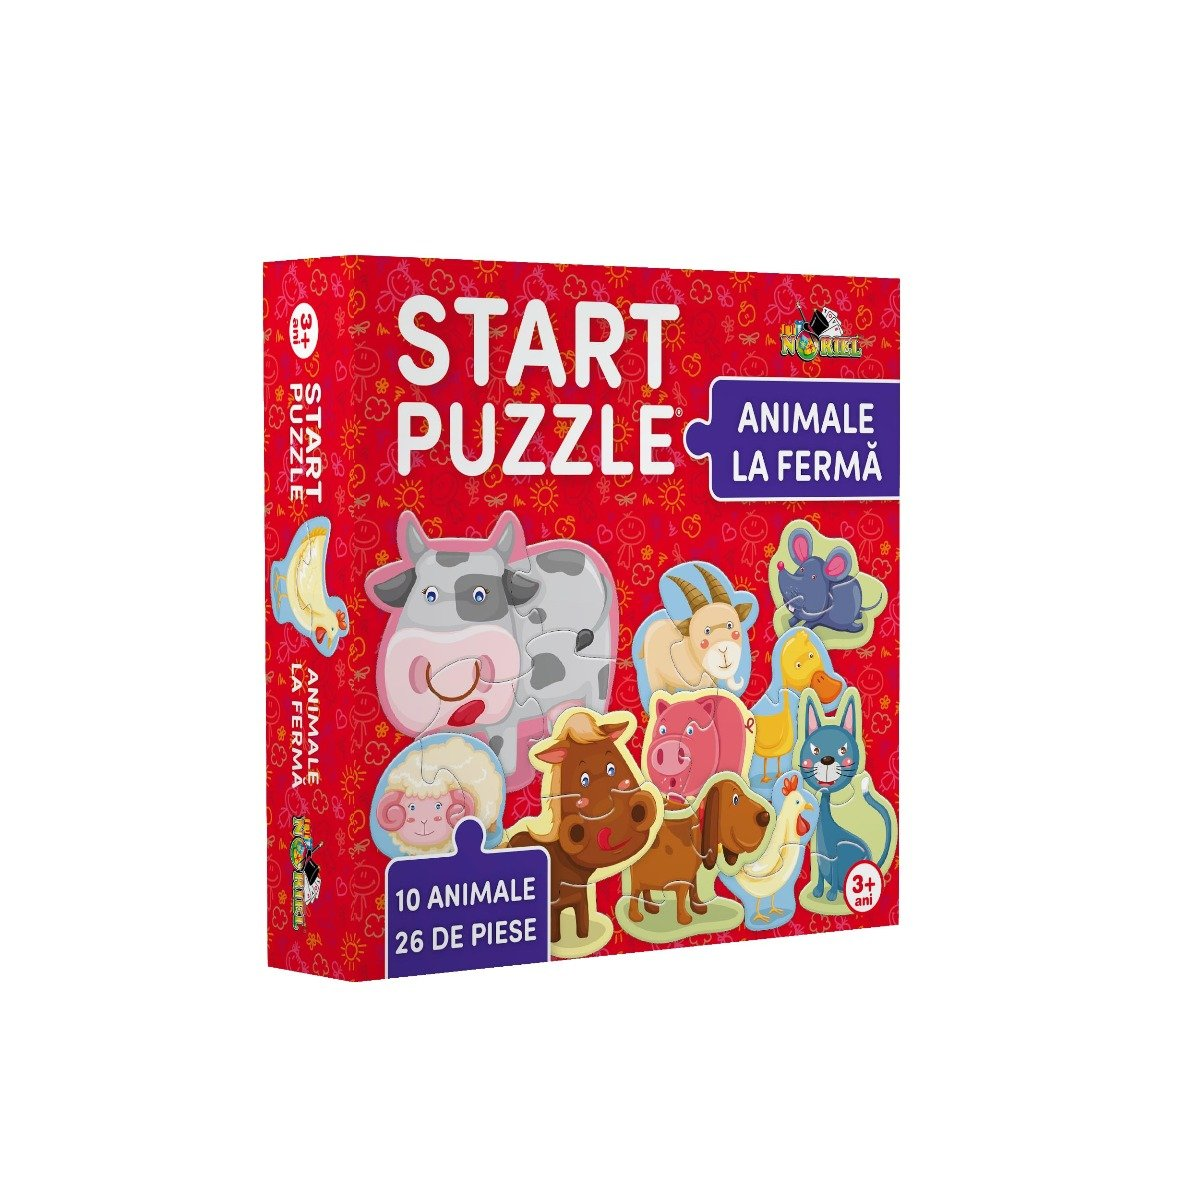 Noriel Puzzle - Start Puzzle, Animale la ferma